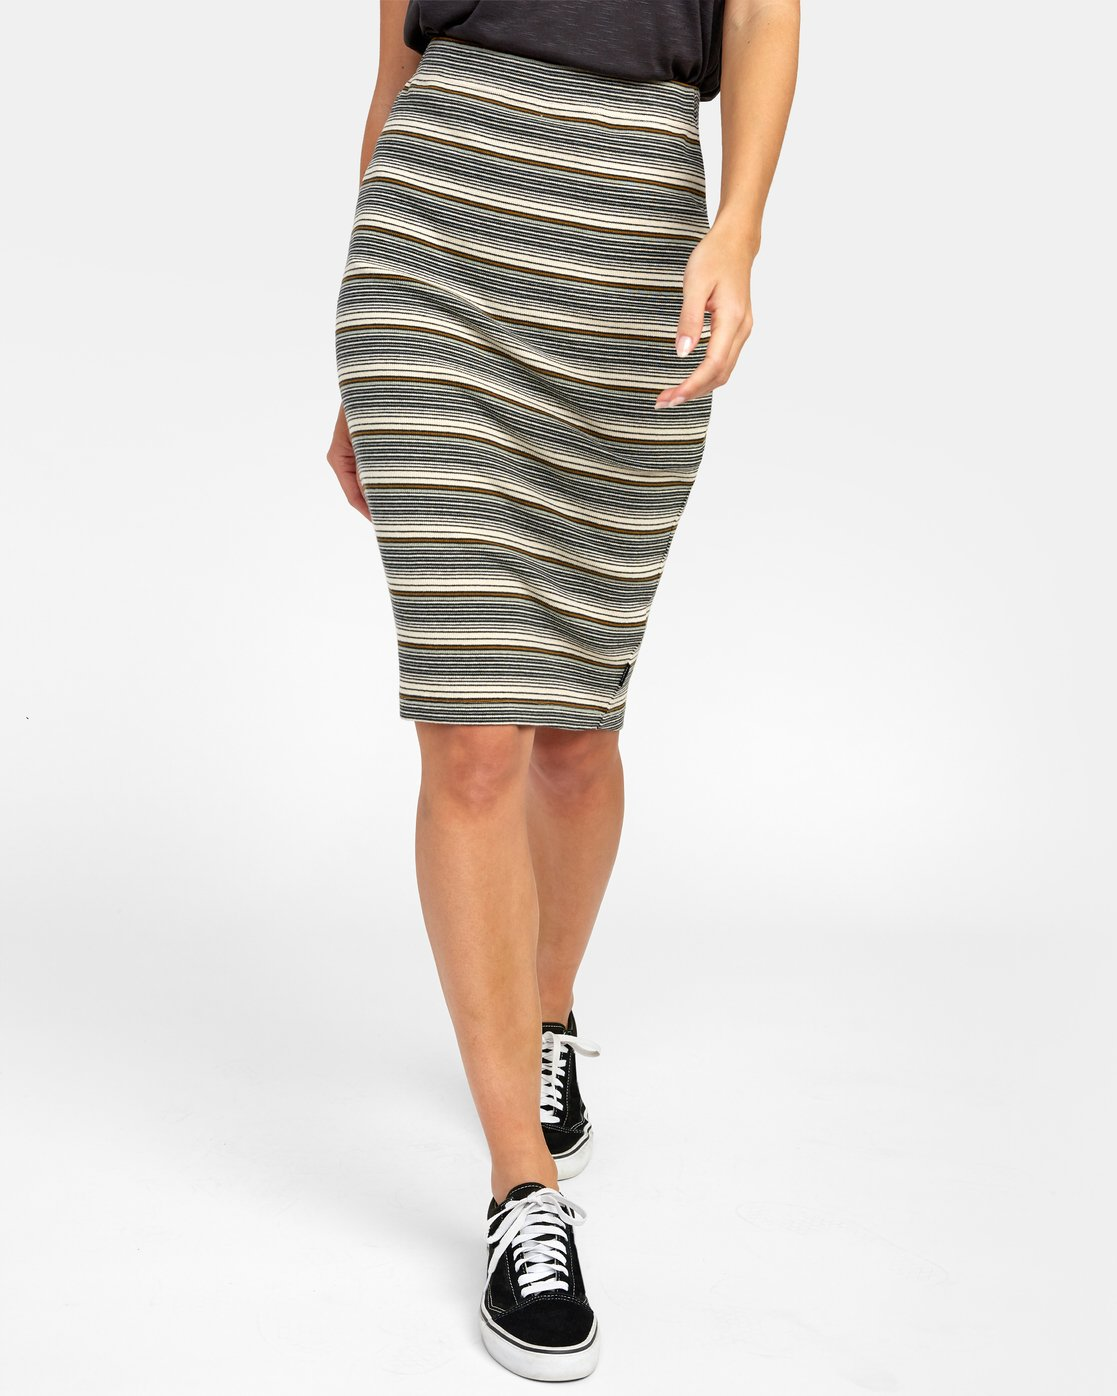 0 PICK ME UP KNIT SKIRT Brown WK021RPI RVCA